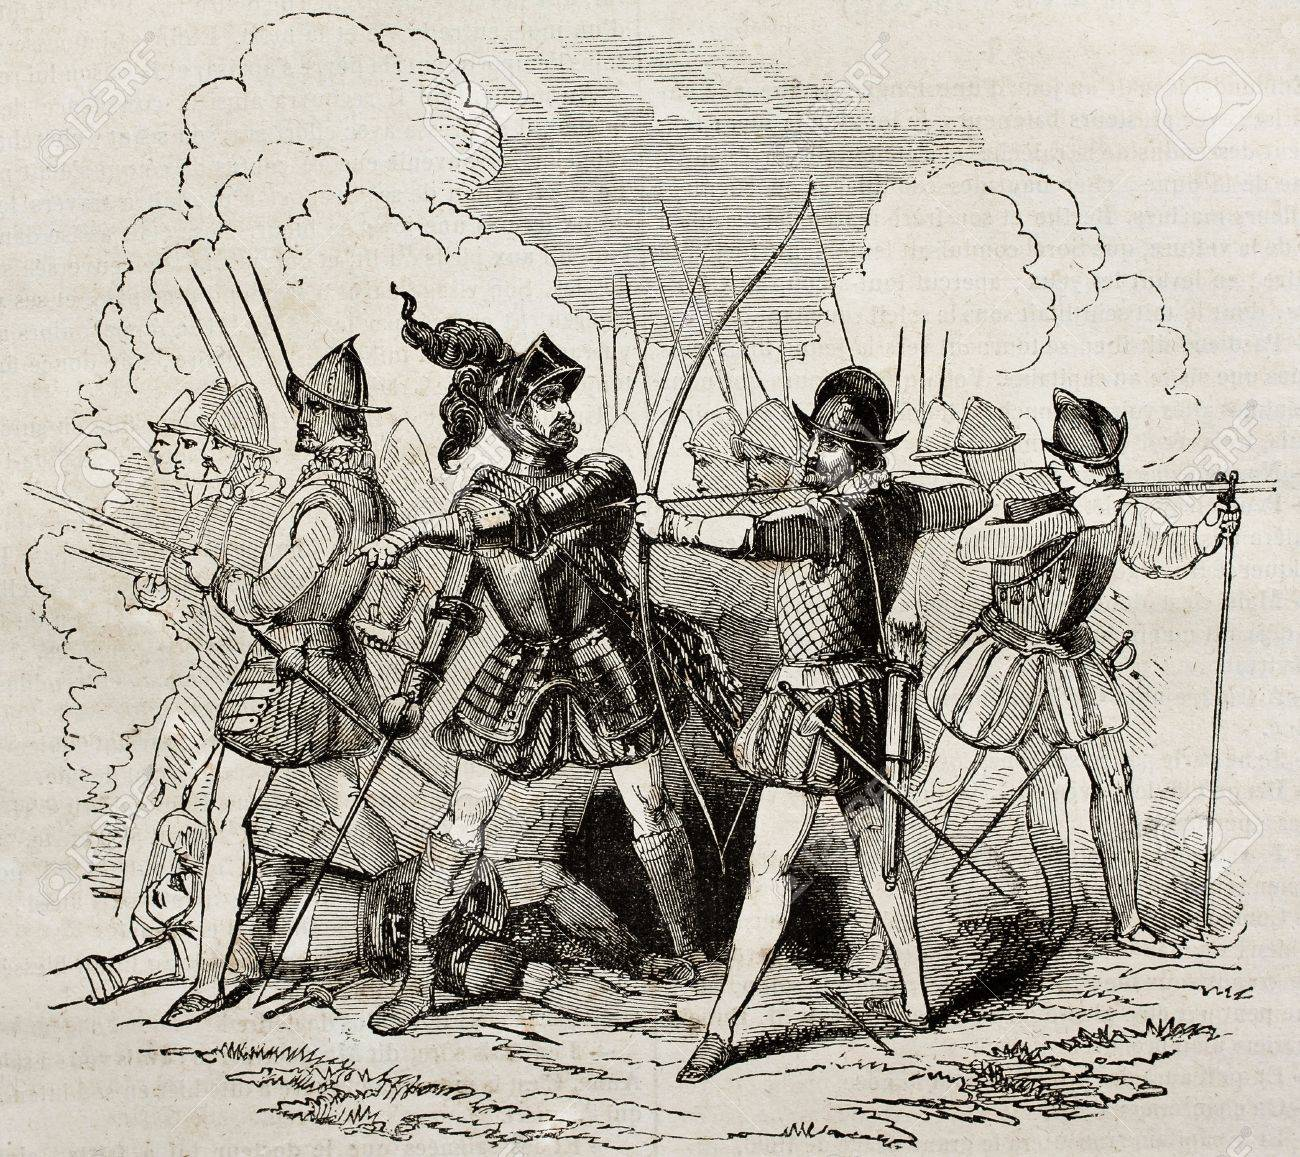 16th century soldiers and weapons, old illustration. By unidentified author, published on Magasin Pittoresque, Paris, 1840 Stock Photo - 15204046